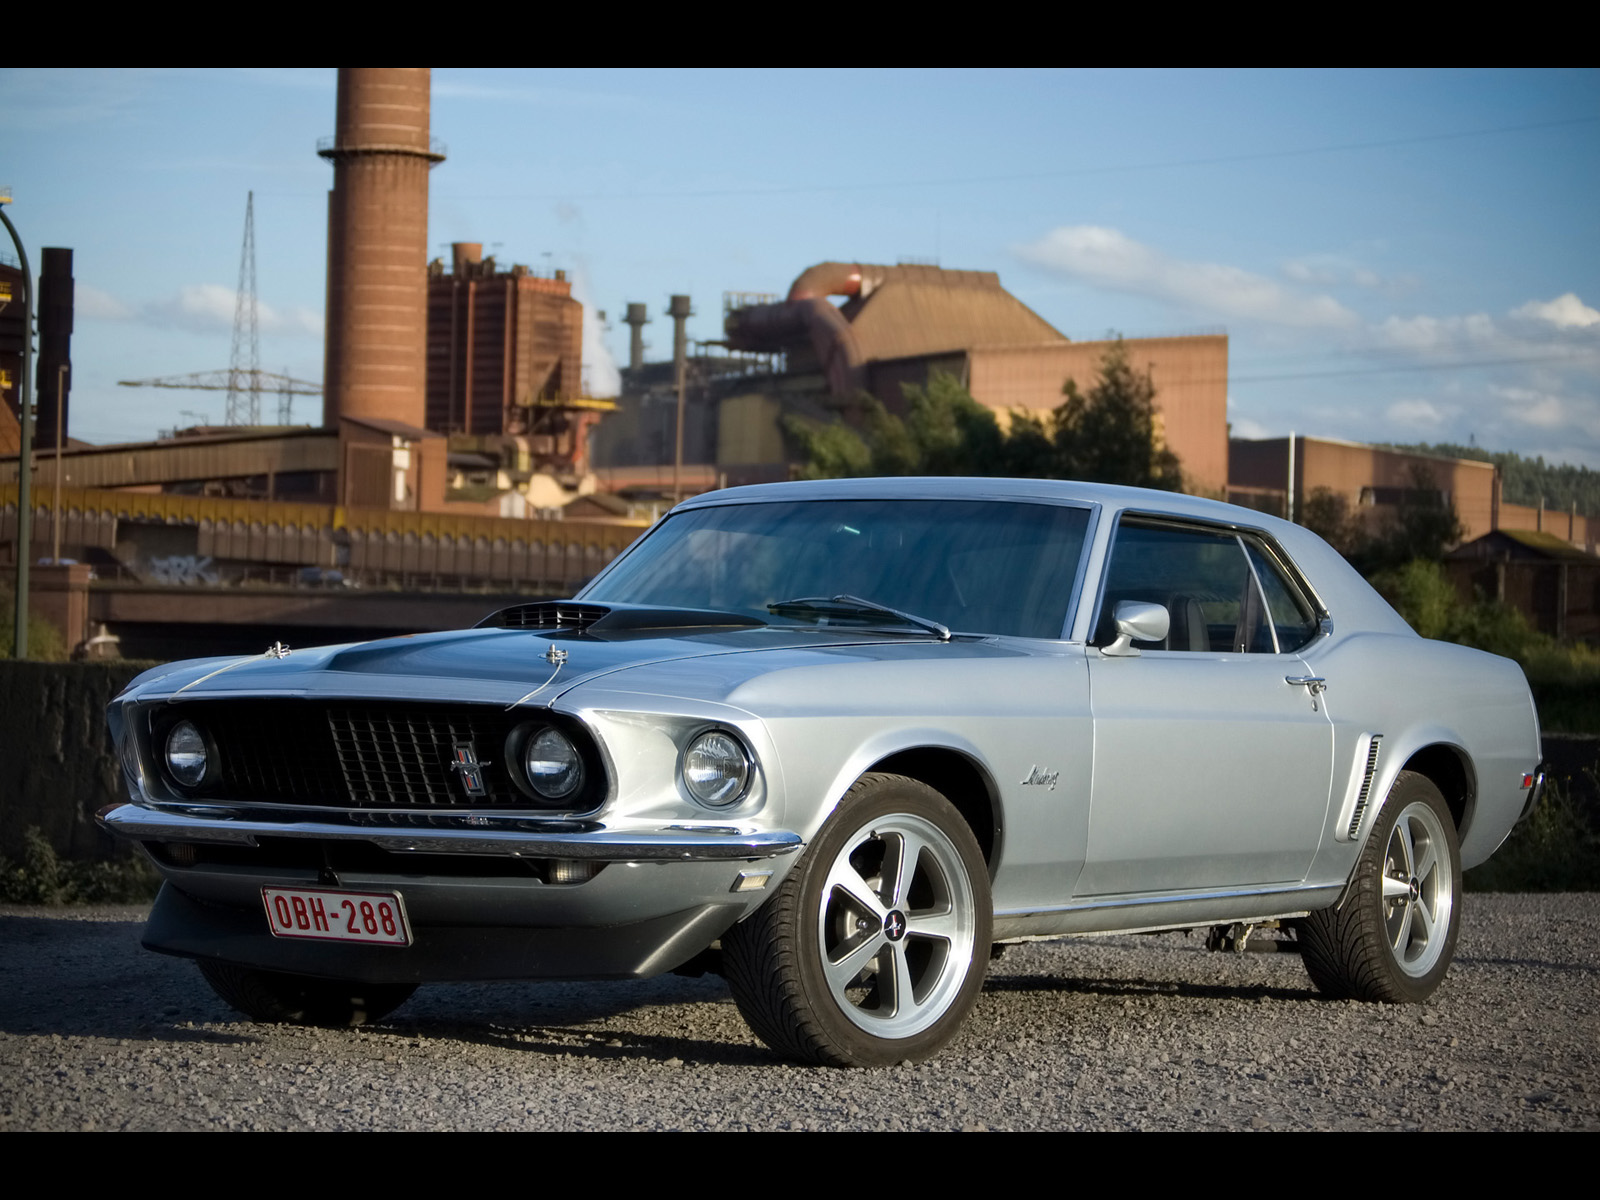 1969 ford mustang hardtop factory front angle 1600x1200 jpg